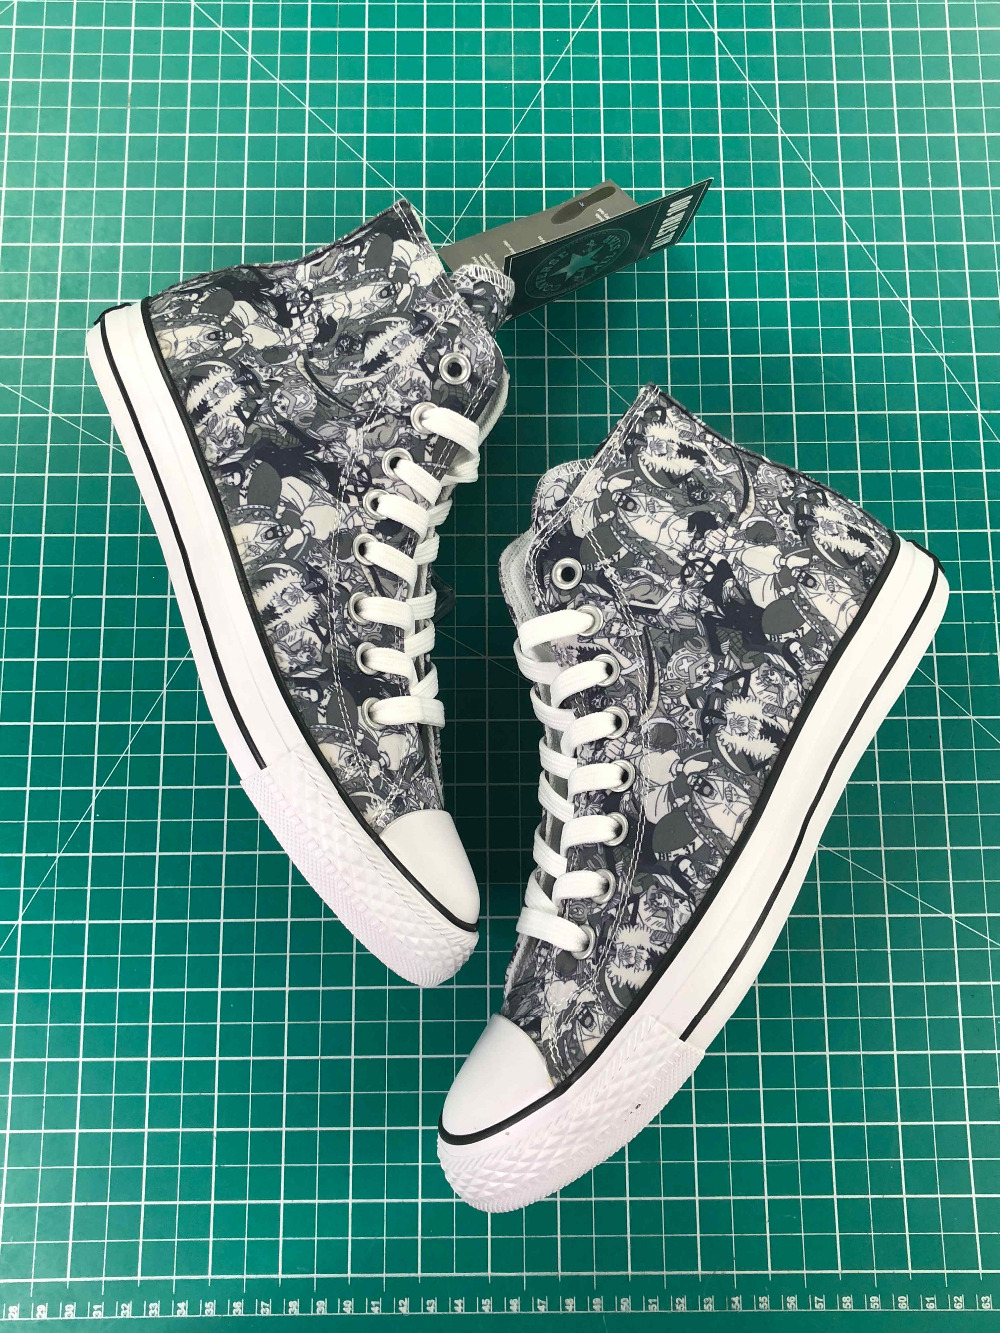 High Top Converse All Star Men Women Shoes Anime The Prince of Tennis Design Hand Painted Shoes Man Woman Sneakers anime shoes girls boys converse all star pokemon go dewgong sea lion design hand painted high top canvas sneakers men women